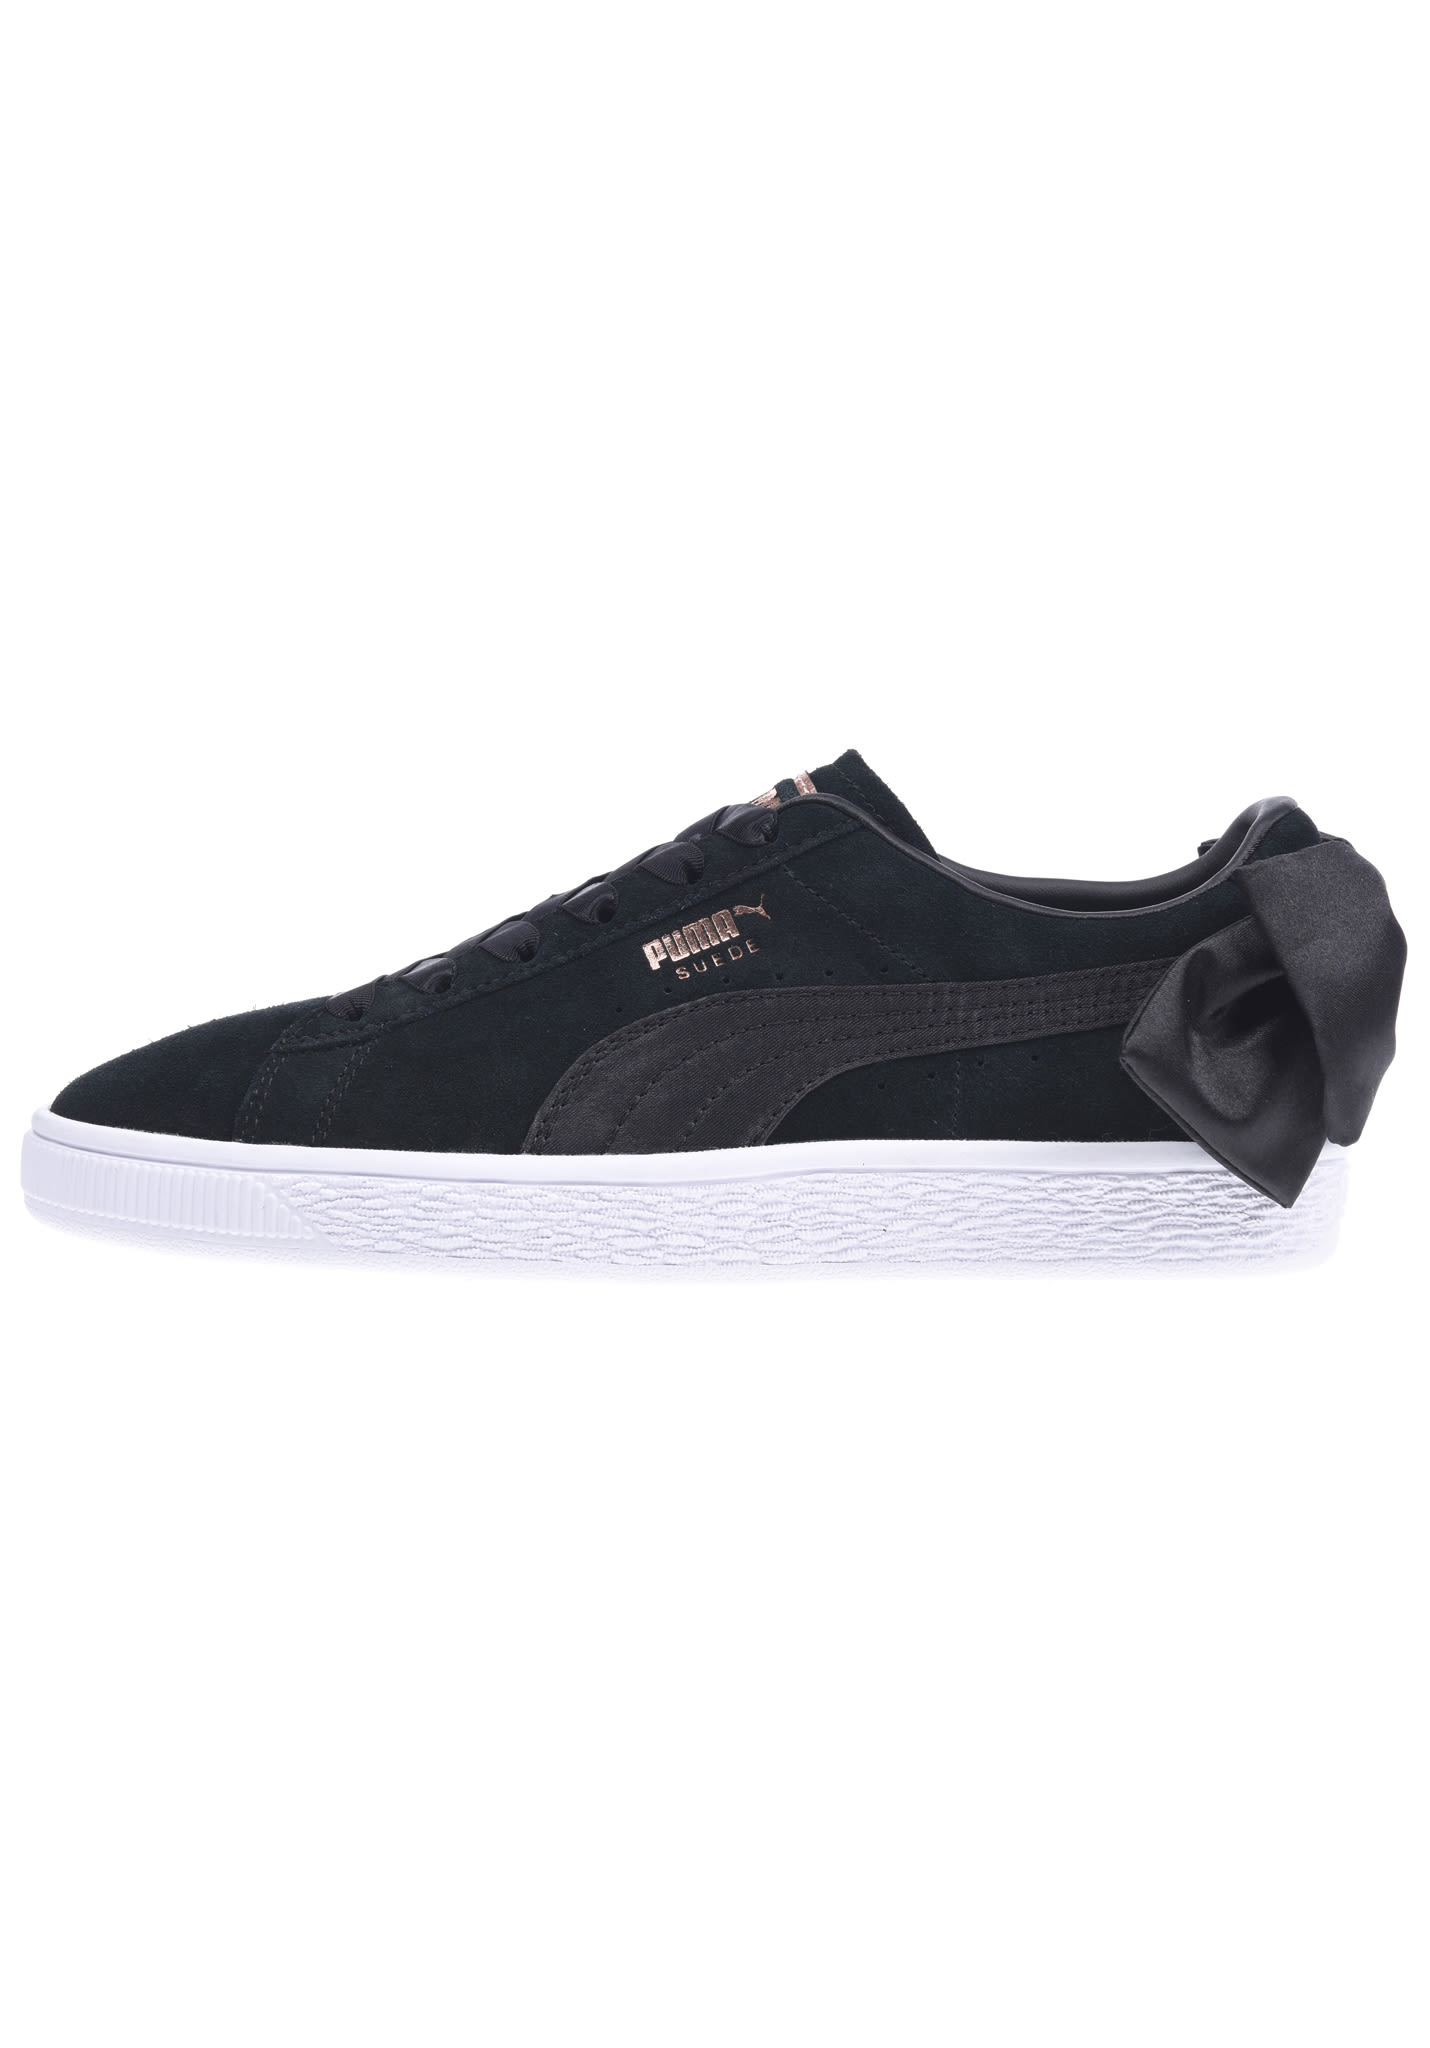 32d817bc56a2 Puma Suede Bow - Sneakers for Women - Black - Planet Sports